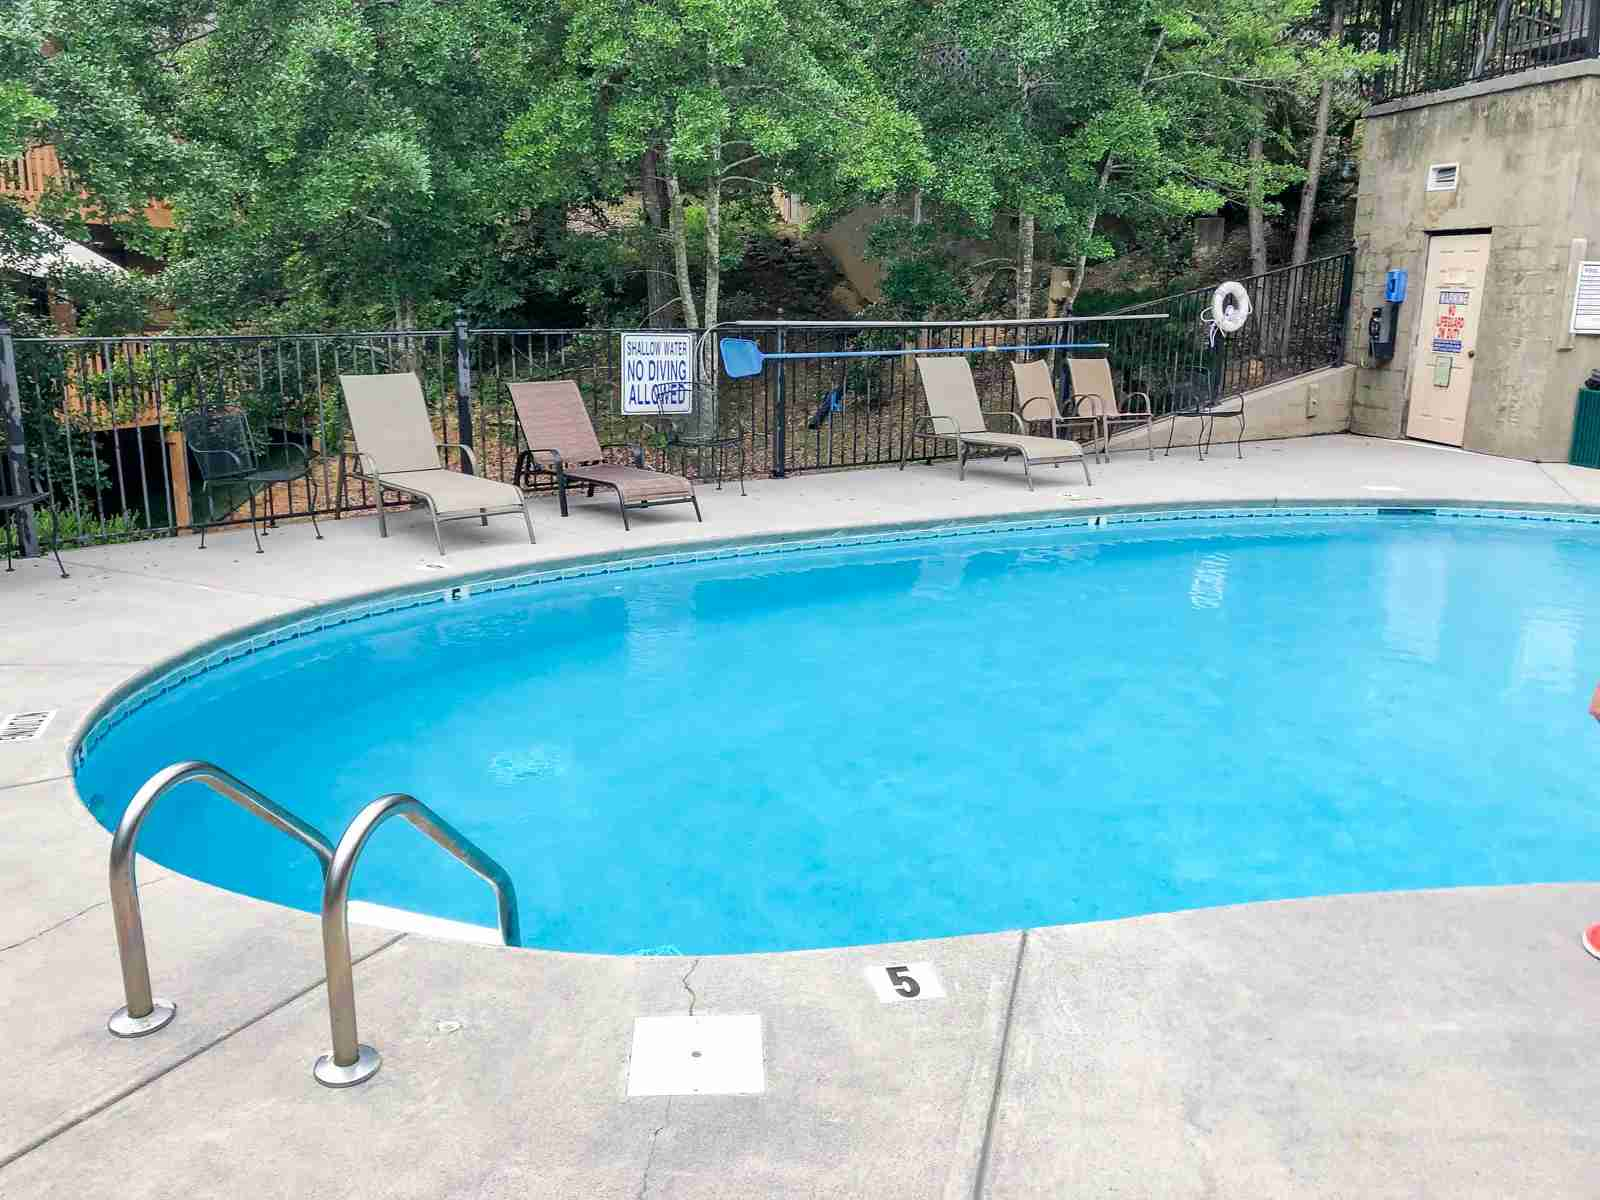 Community pool in a neighborhood in Pigeon Forge (Photo by Caitlin Riddell/The Points Guy)